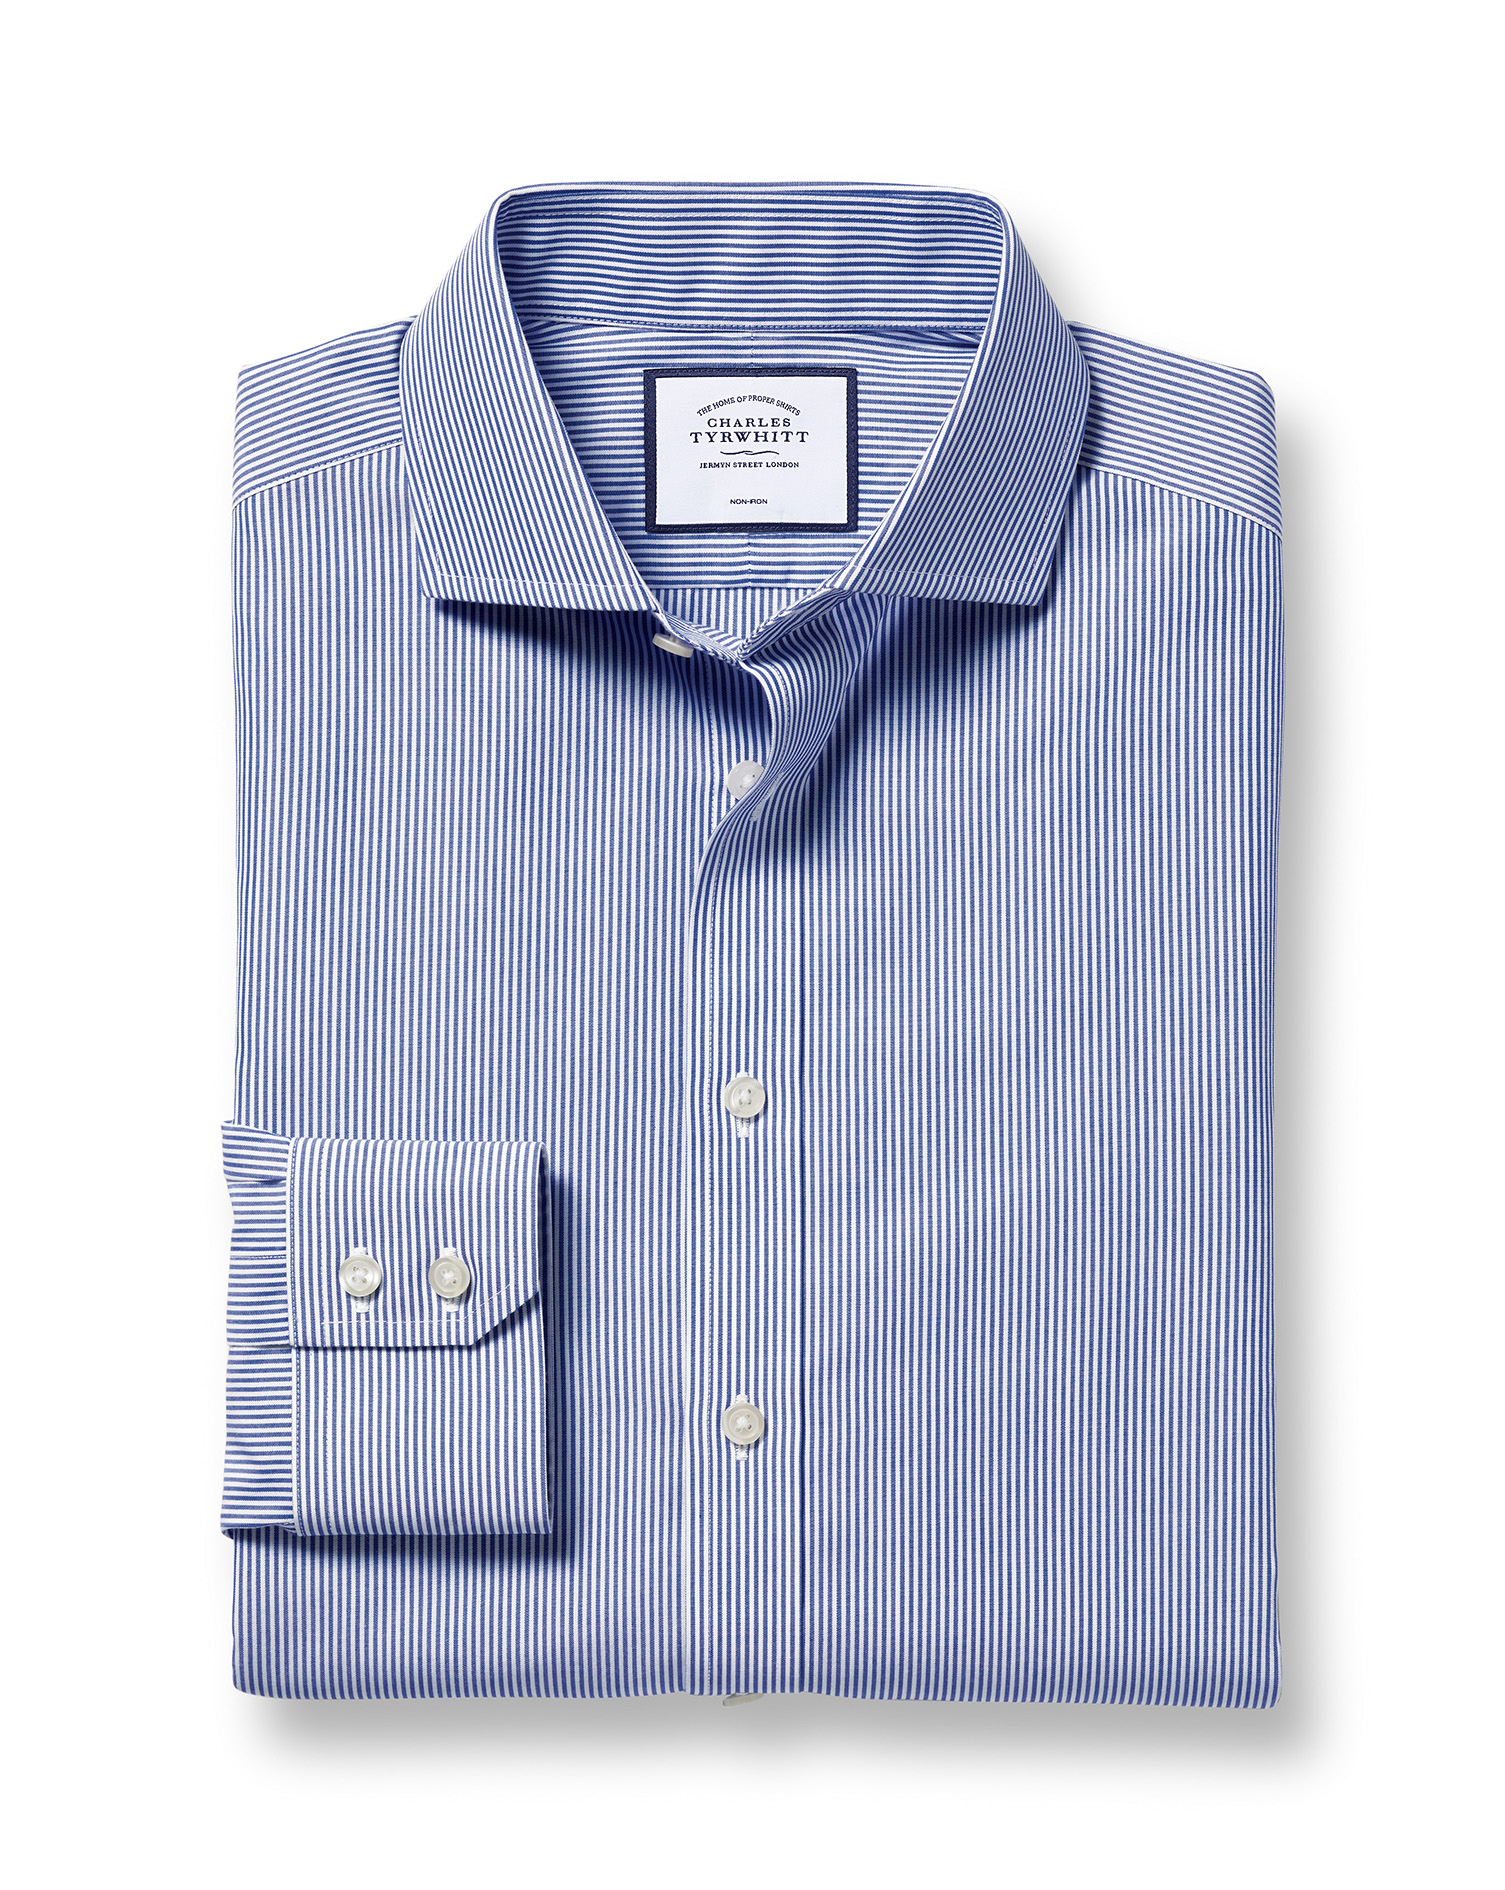 Slim Fit Non-Iron Cutaway Navy Bengal Stripe Cotton Formal Shirt Single Cuff Size 16.5/36 by Charles